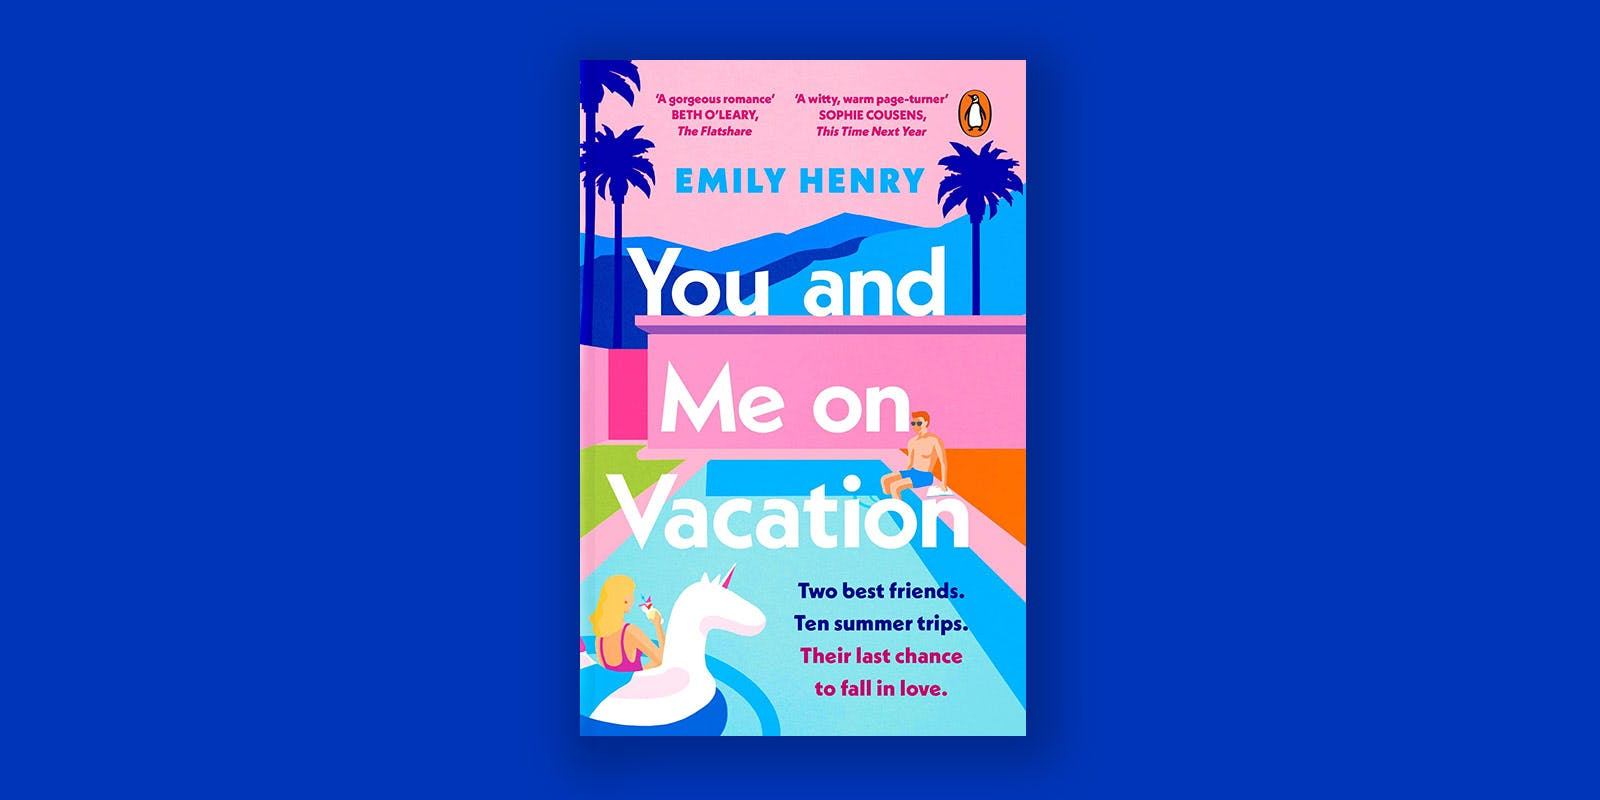 You and Me on Vacation book club notes